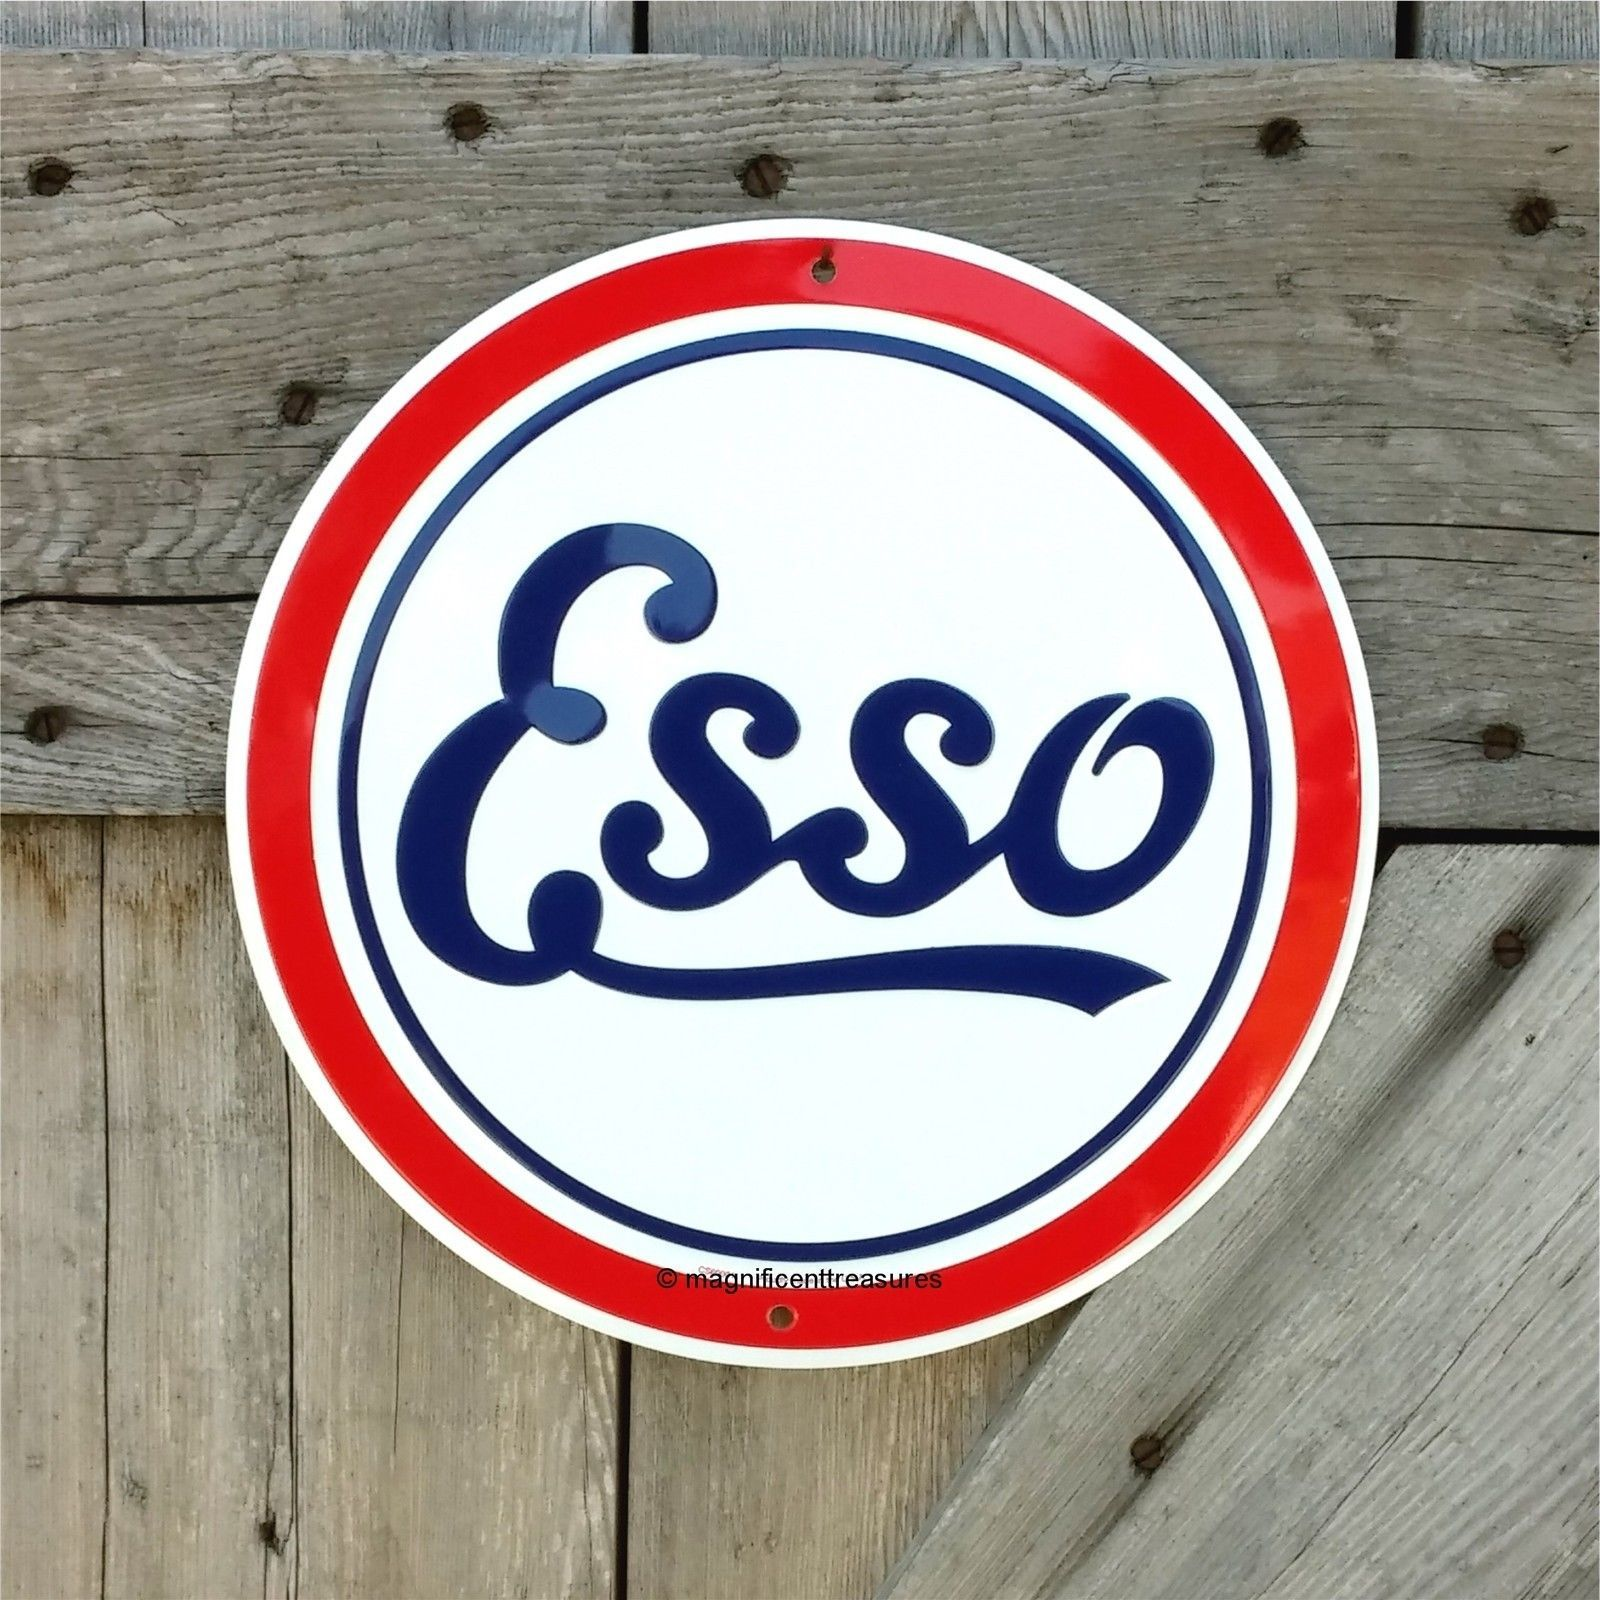 "Details About ""ESSO"" ROUND CIRCLE SIGN GASOLINE GAS PUMP"